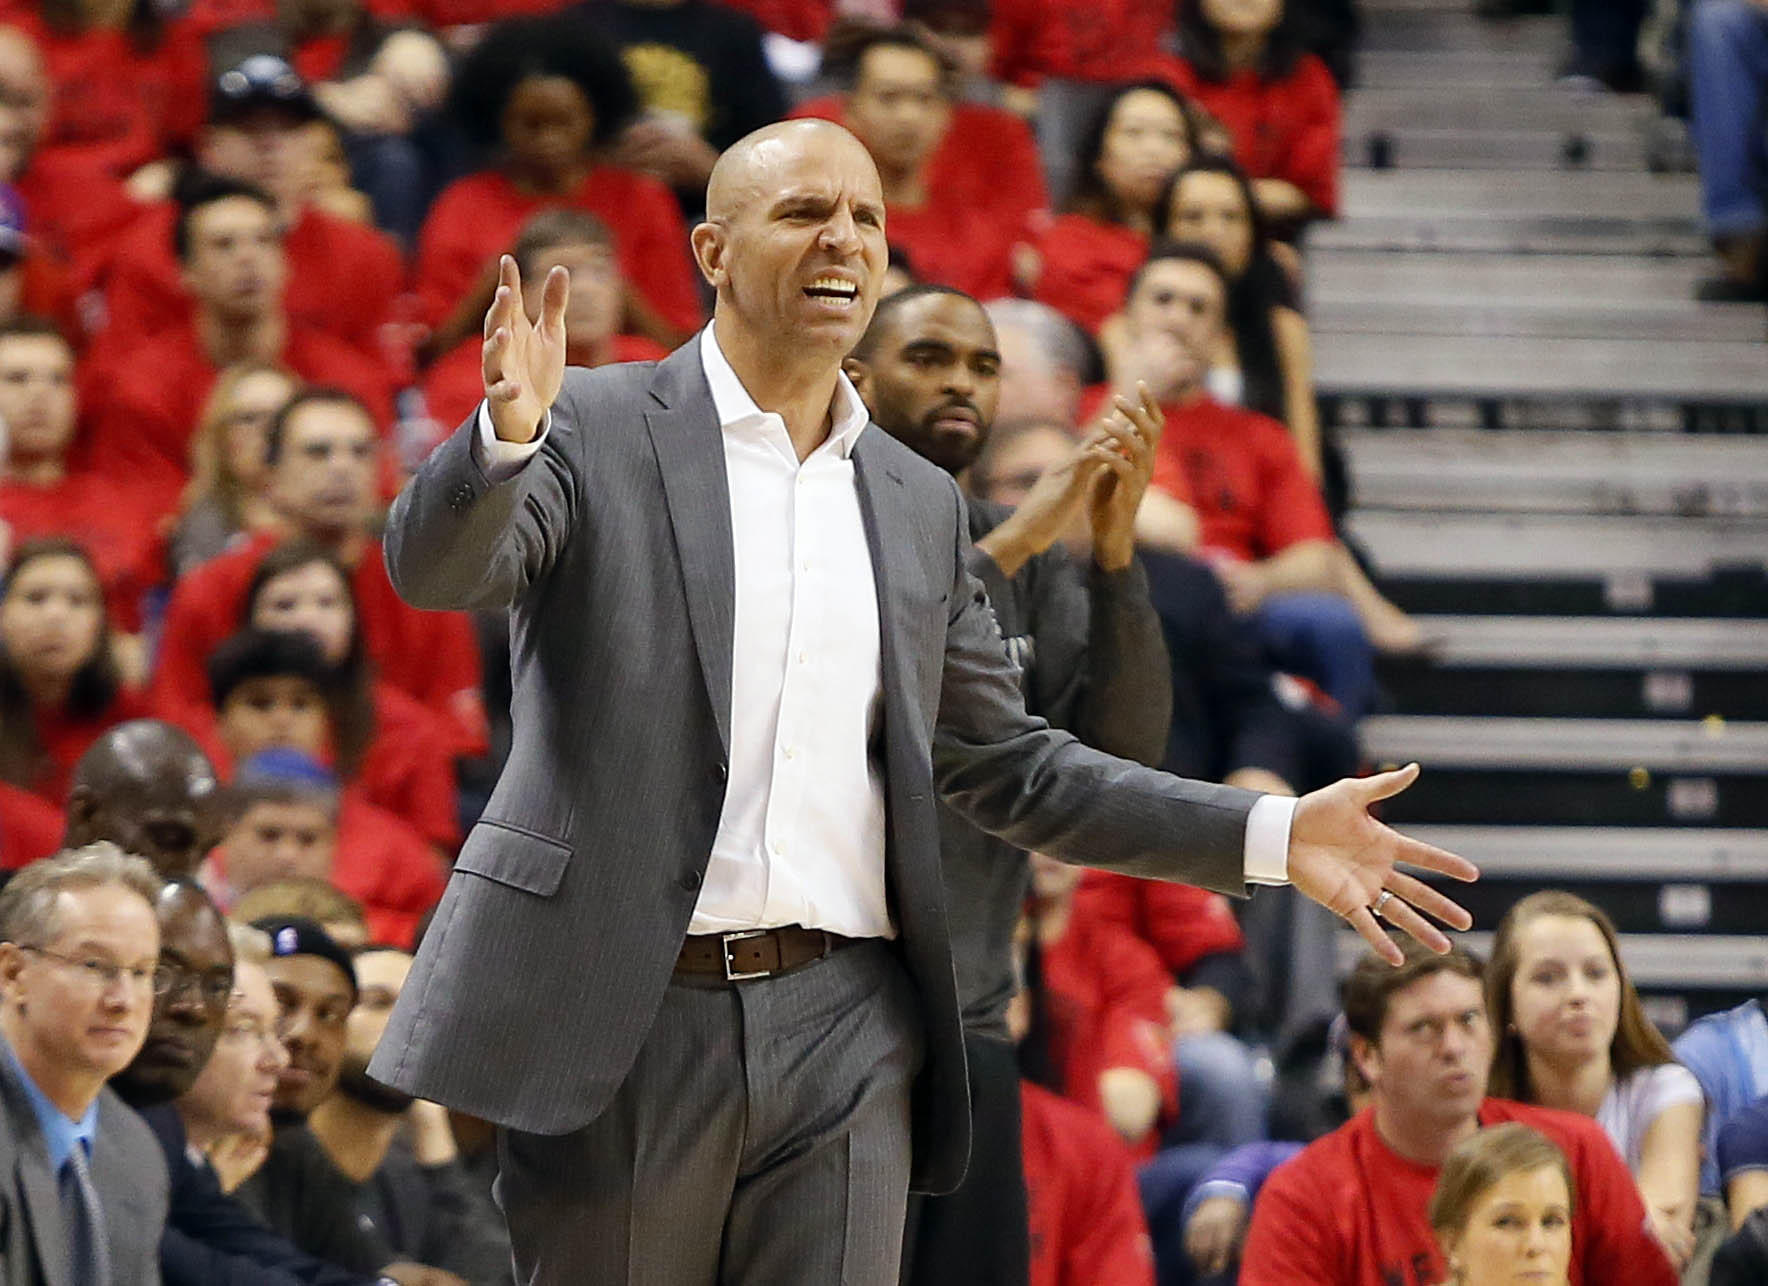 Nets head coach Jason Kidd reacts to a call in Game 7 of the playoffs against the Raptors.